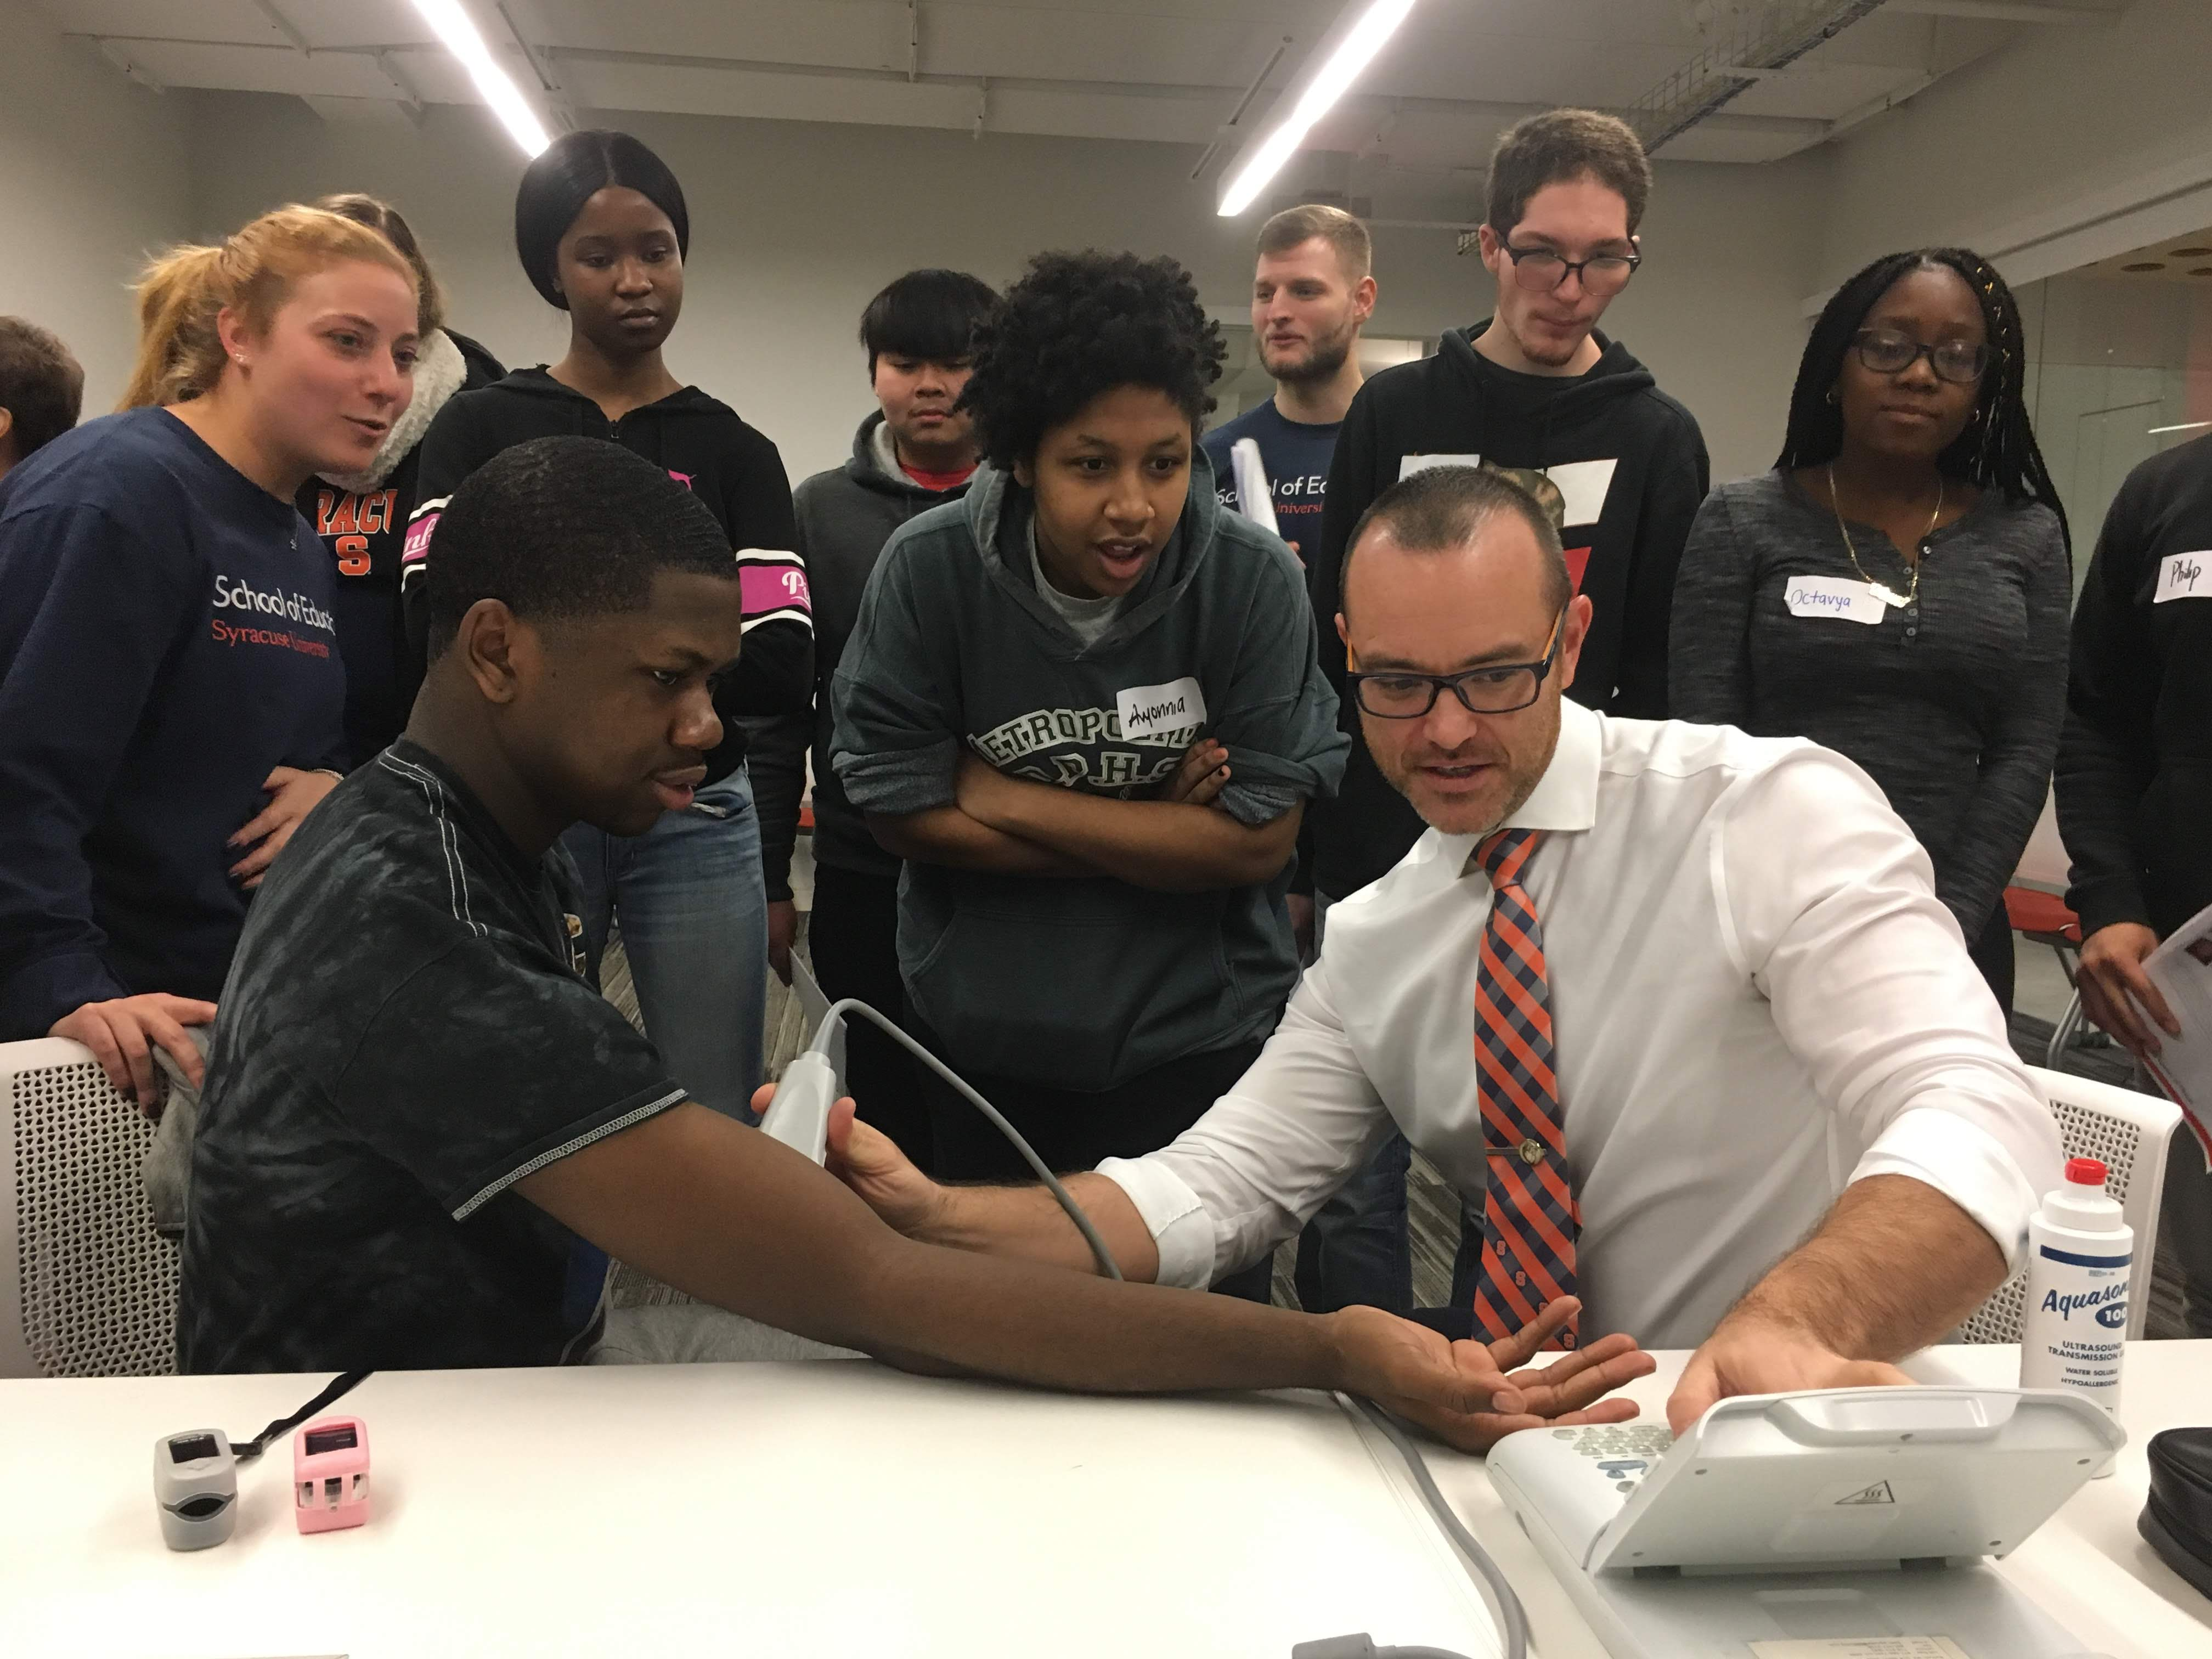 Prof Kevin Heffernan works with exercise science and high school students on a exercise physiology project